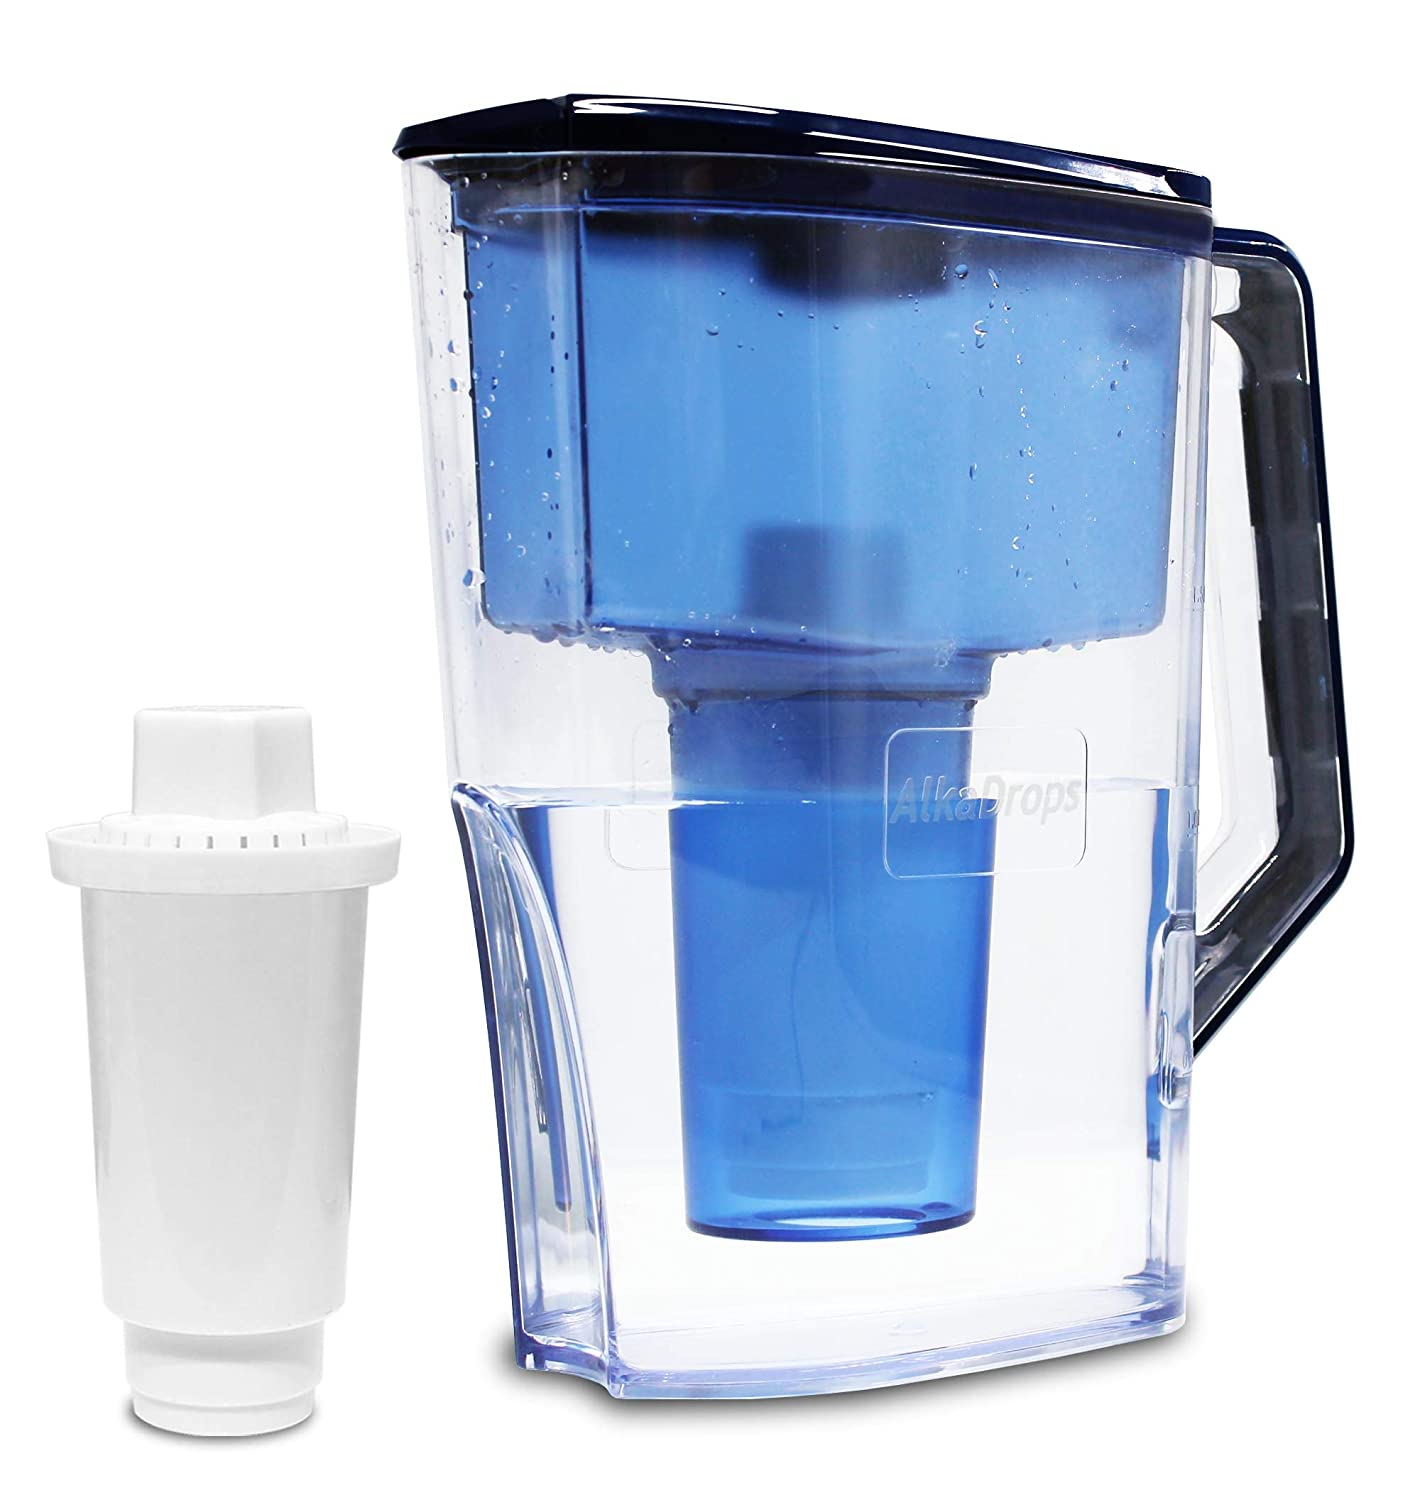 Water Filter Pitcher, Alkaline Water Pitcher,Water Alkaline Filter Pitcher -7 Stage Ionizer Filtration System to Purify and Increase PH Levels - Clean, Refreshing Water, 10 Cup Pitcher,BPA free